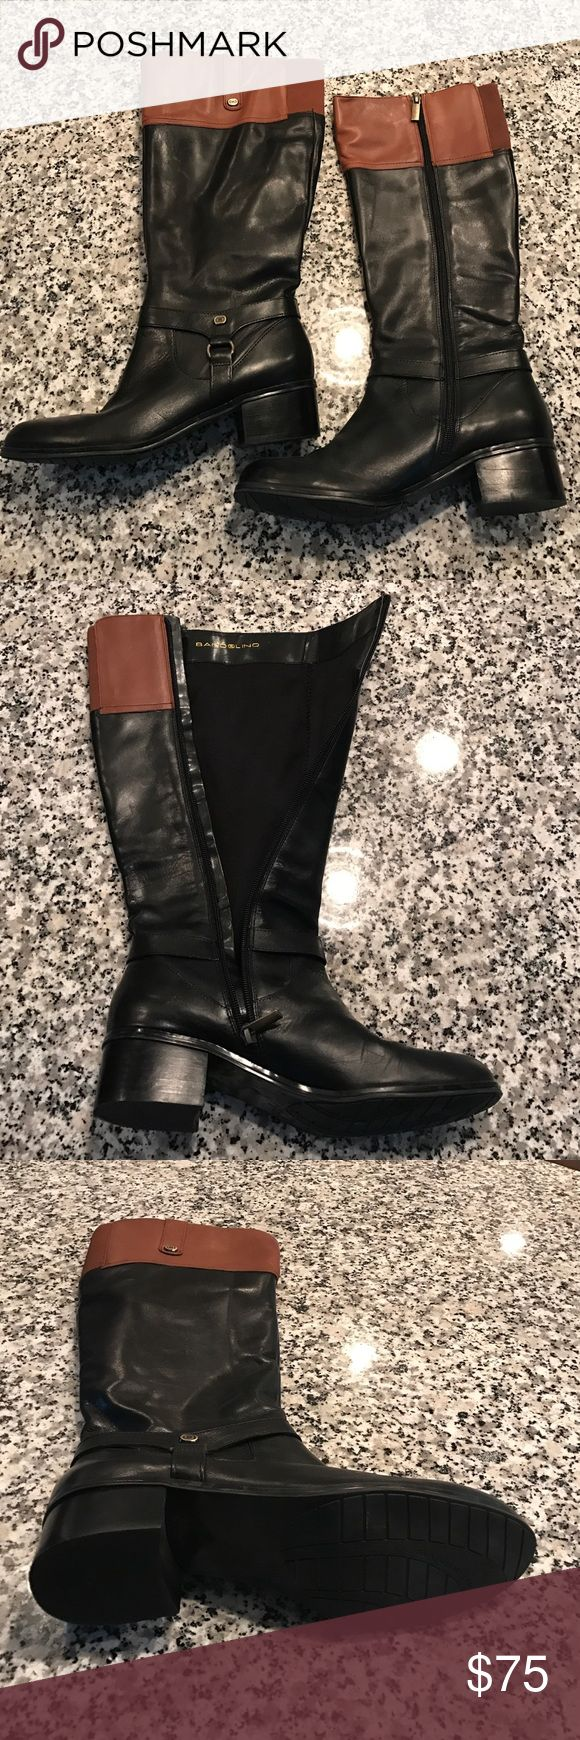 Bandolino Women's Riding Boots - Size 9 Women's Bandolino Riding Boots.  Worn only once.  Size 9.  Black with brown at the top.  Great condition.   Like-new Boots. Bandolino Shoes Heeled Boots